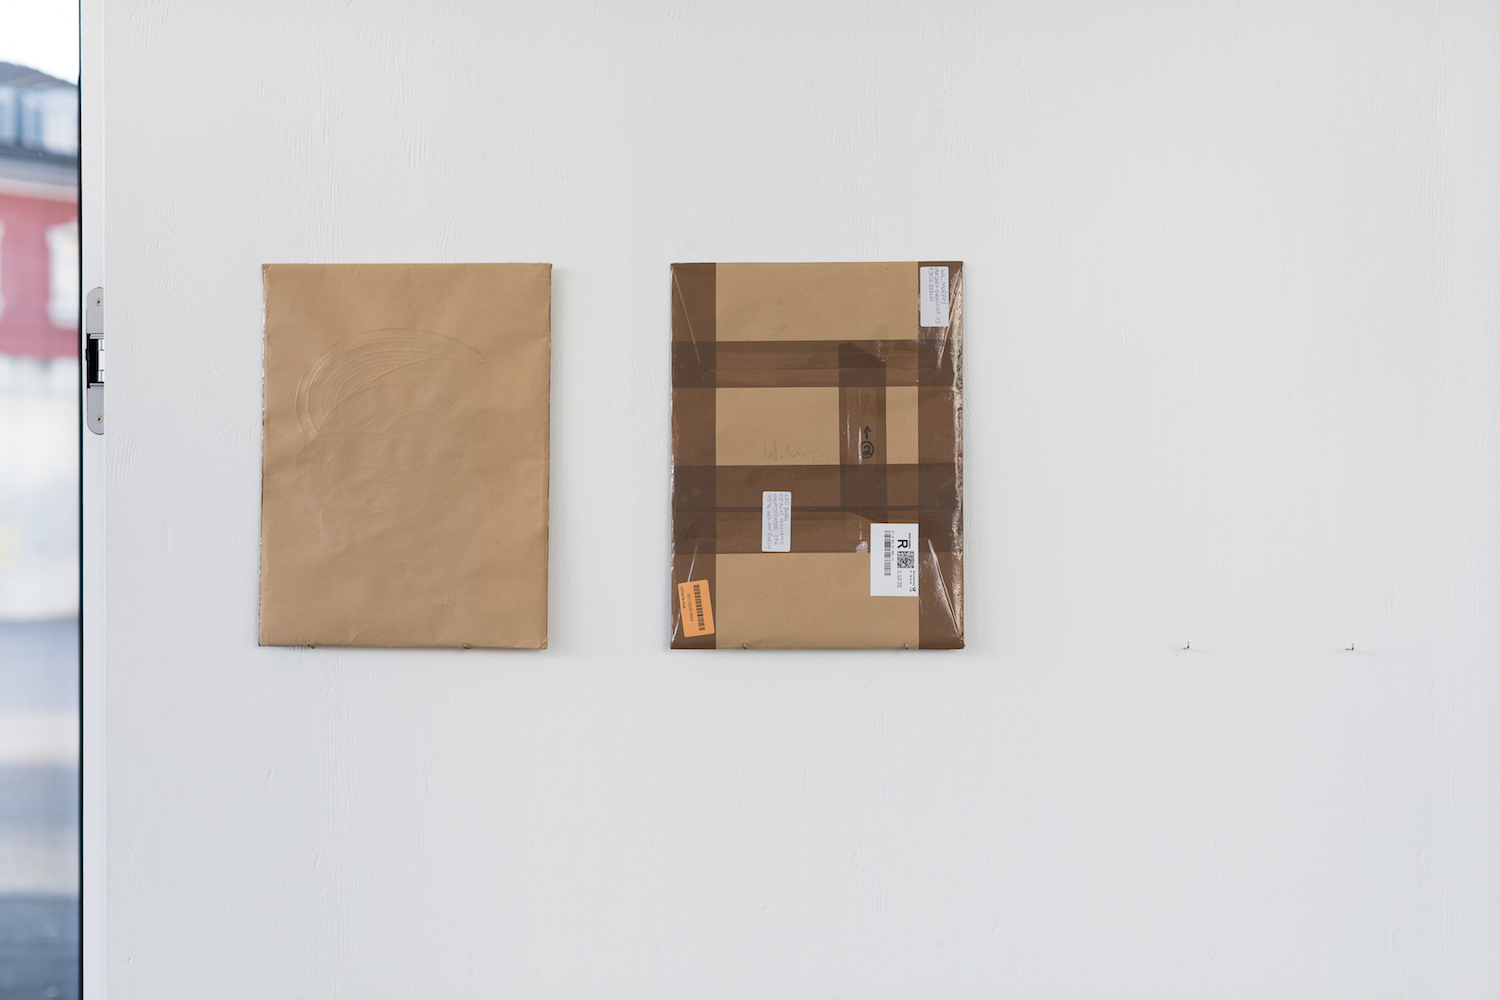 Wil Murray, Well Eel 1, and, Well Eel 1. Acrylic Paint, Kraft Paper, Mylar, Lighting Gel, Svema 64 Black and White Negative, Card, Masking Tape, Packing Tape. 41 x 31 cm each. Photographer: Nicolas Gysin.